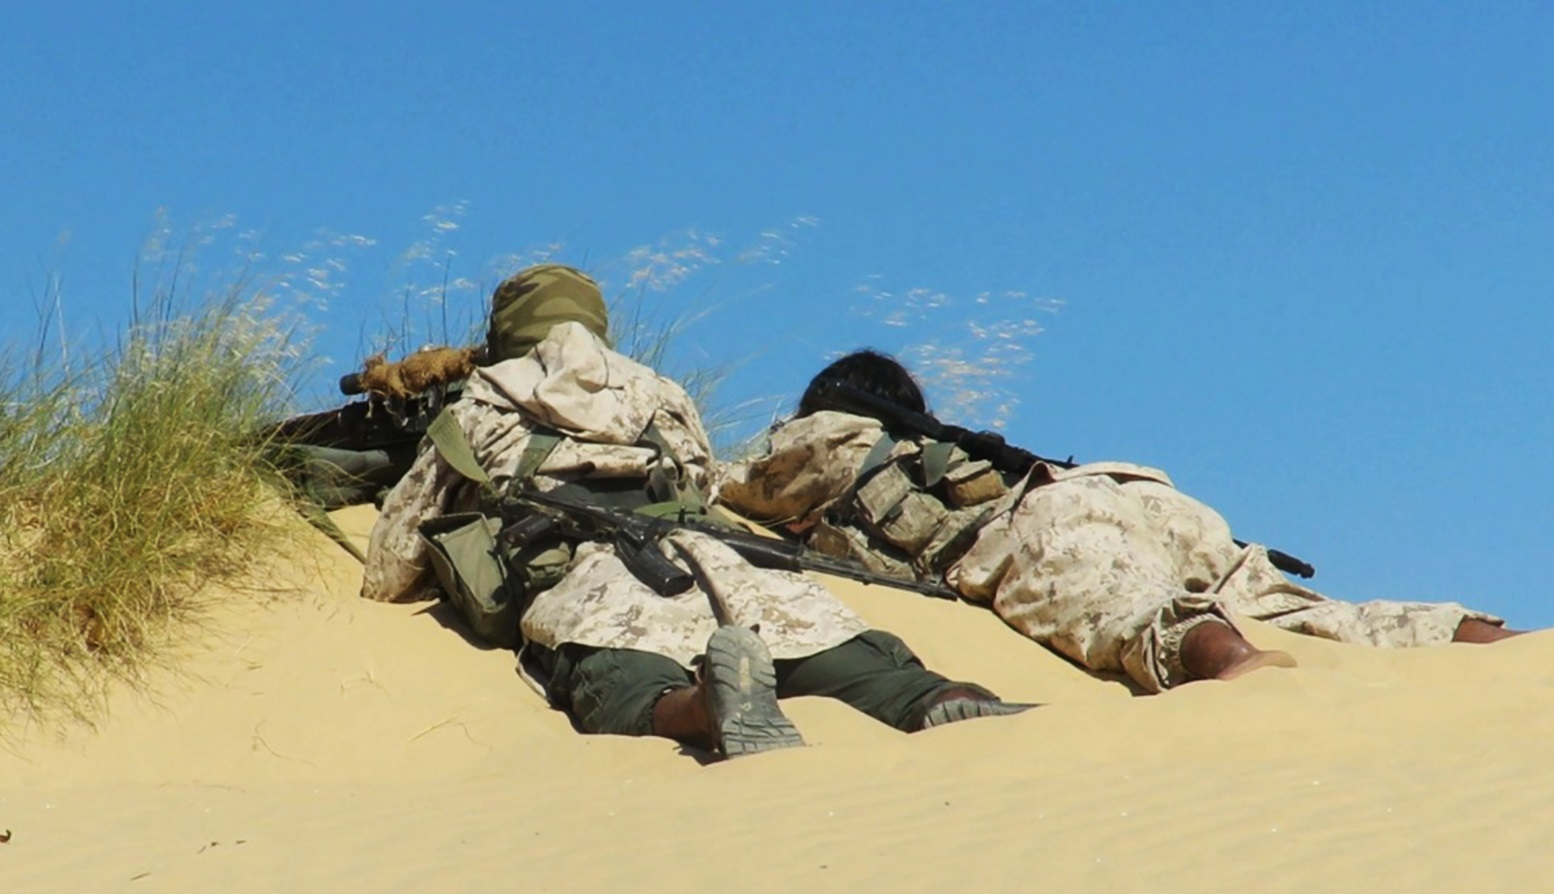 ISIS Terrorists Targeted Egyptian Military In Several Recent Attacks On North Sinai